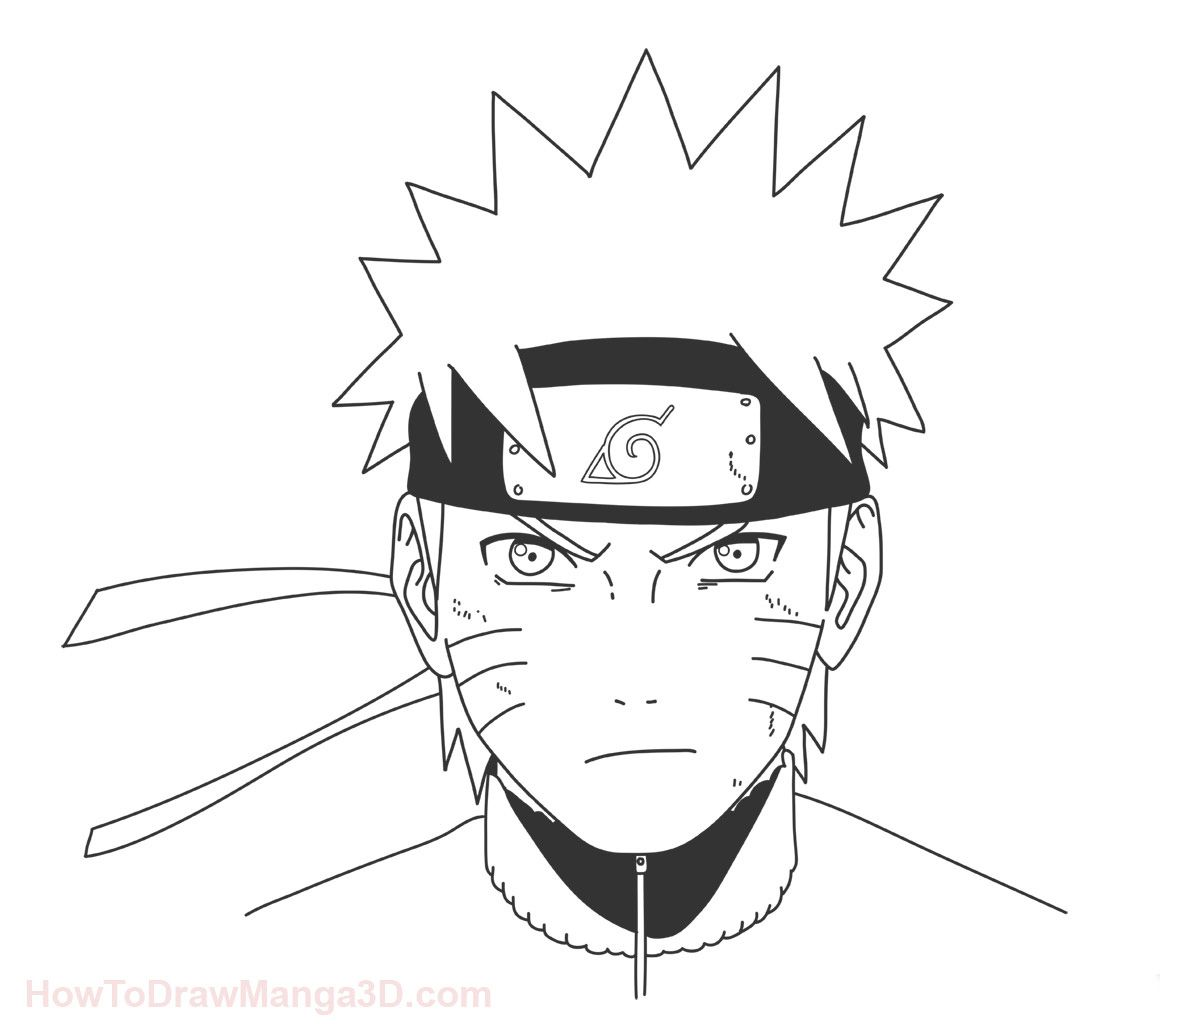 Let 39 S Learn How To Draw Naruto Step By Step From Naruto Today Naruto Uzumaki Á†ãšã¾ããƒŠãƒ«ãƒˆ Uzumaki Naruto Naruto Sketch Drawing Naruto Drawings Naruto Sketch